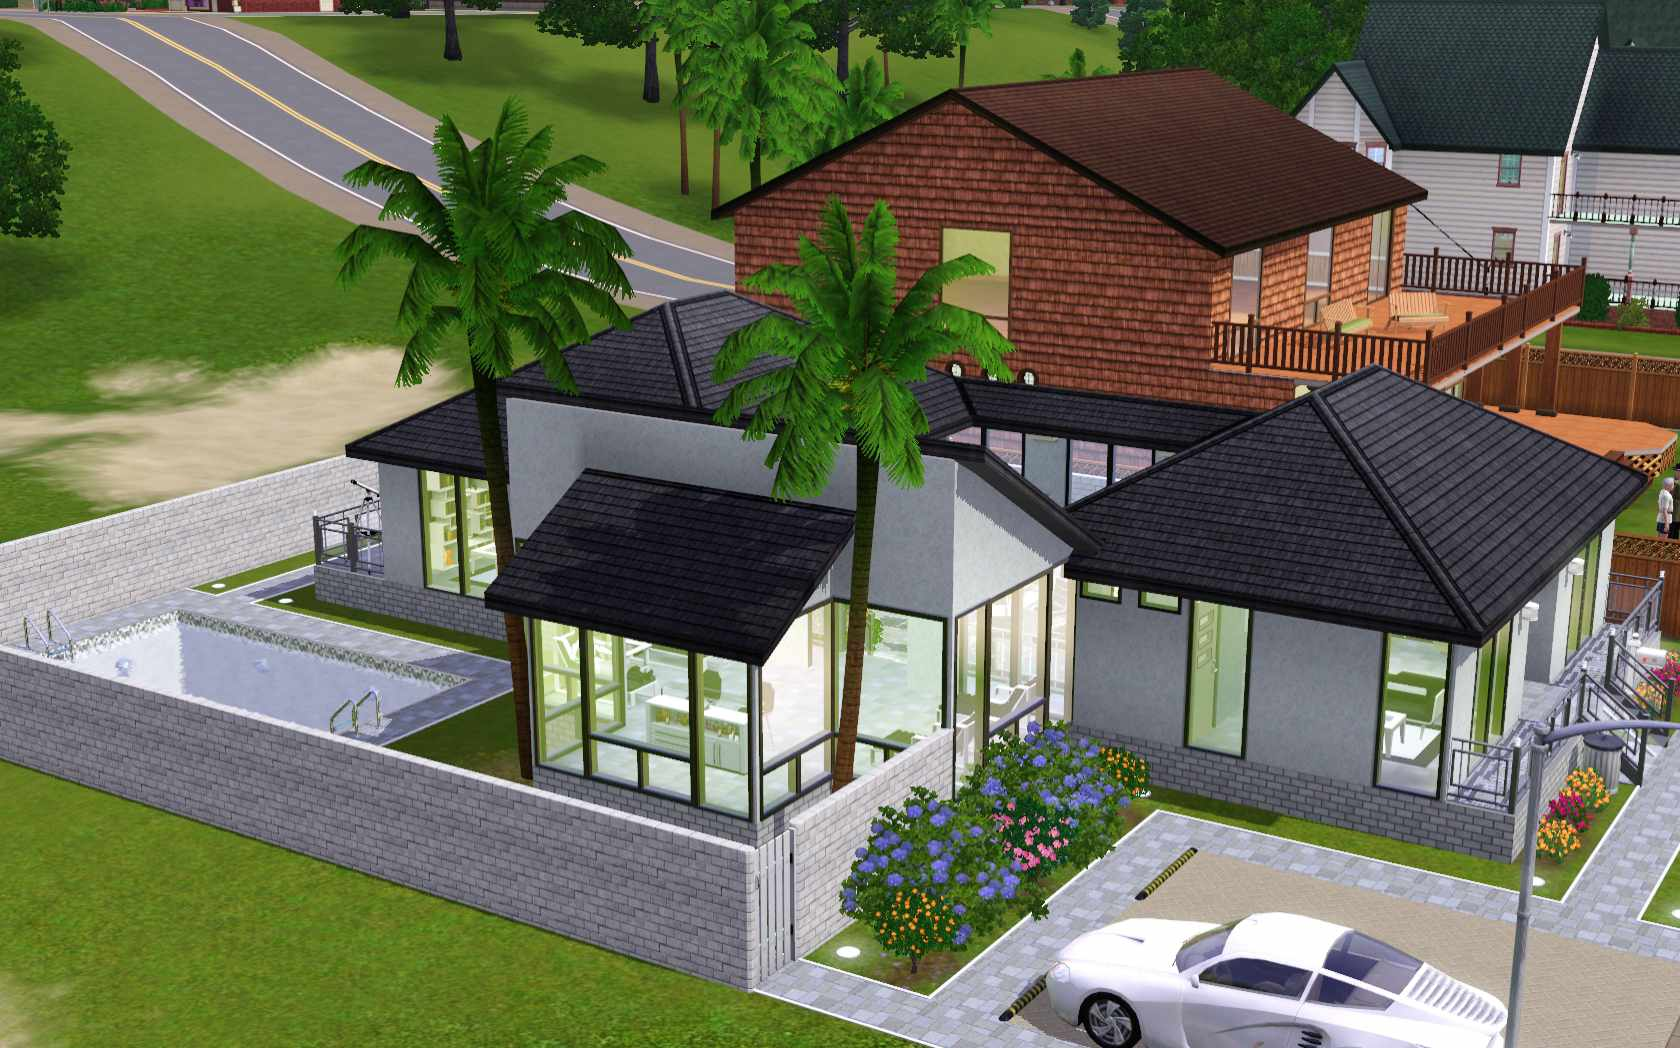 The Sims 3  Room Build Ideas and Examples The Sims 3 Home Building and Design